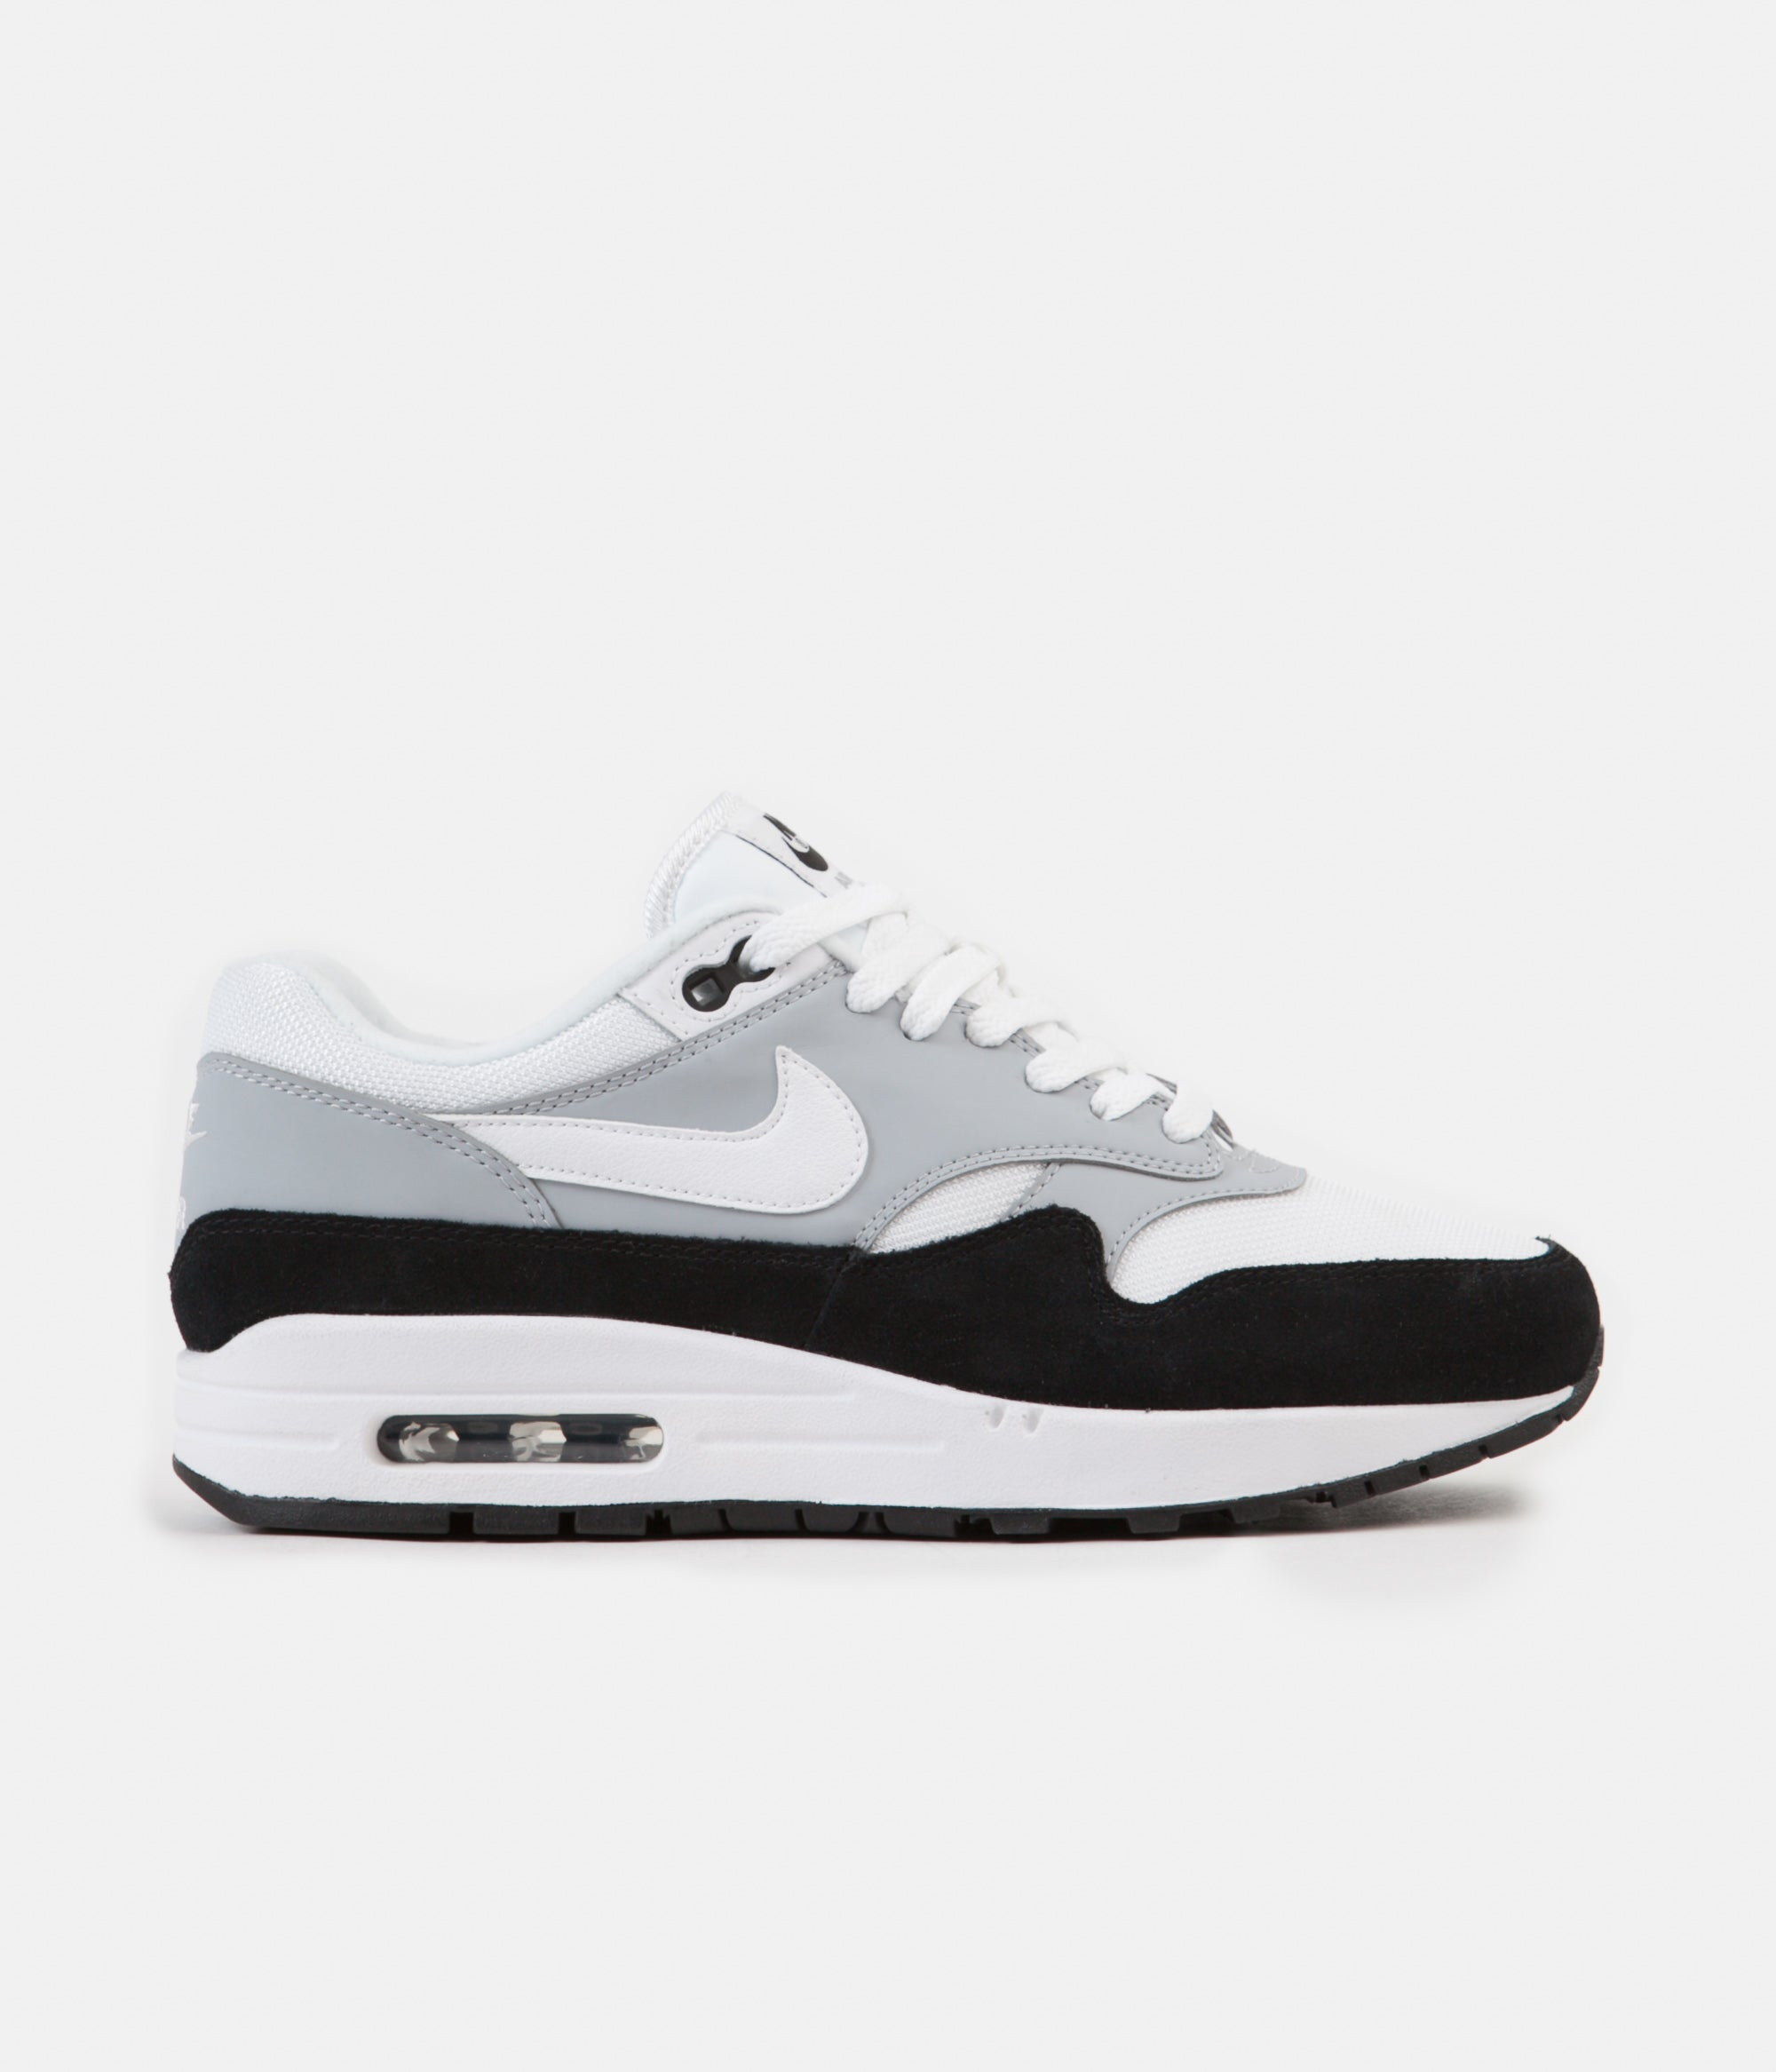 best sneakers 917c7 1e861 ... Nike Air Max 1 Shoes - Wolf Grey   White - Black ...